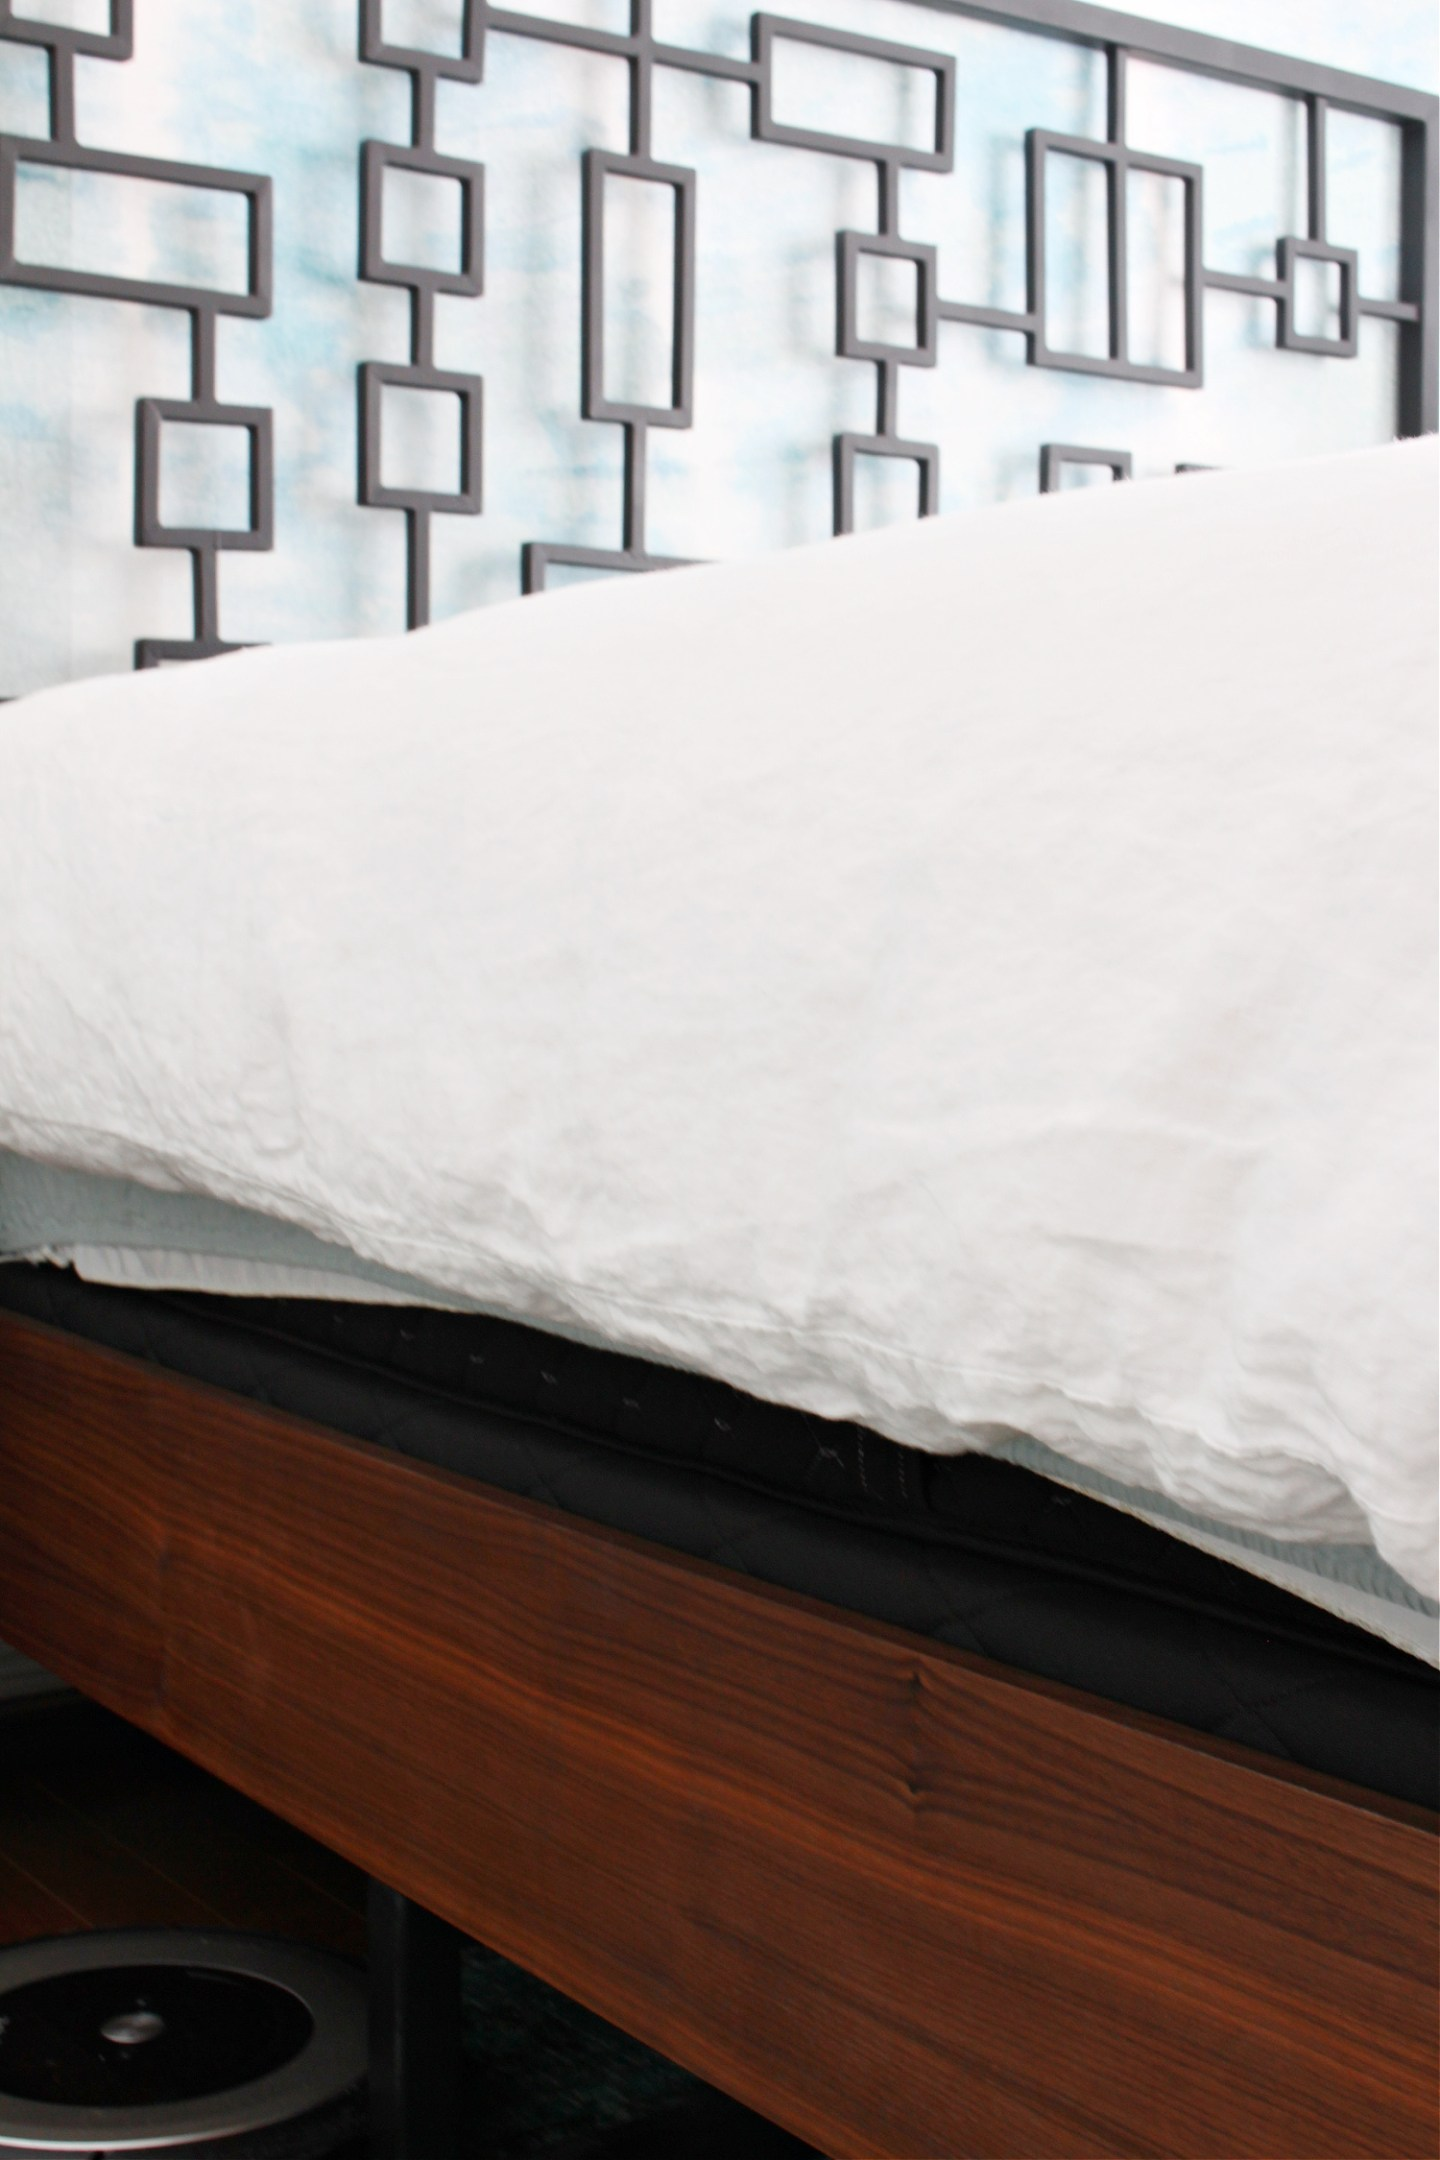 How to Fix a Duvet that is too small